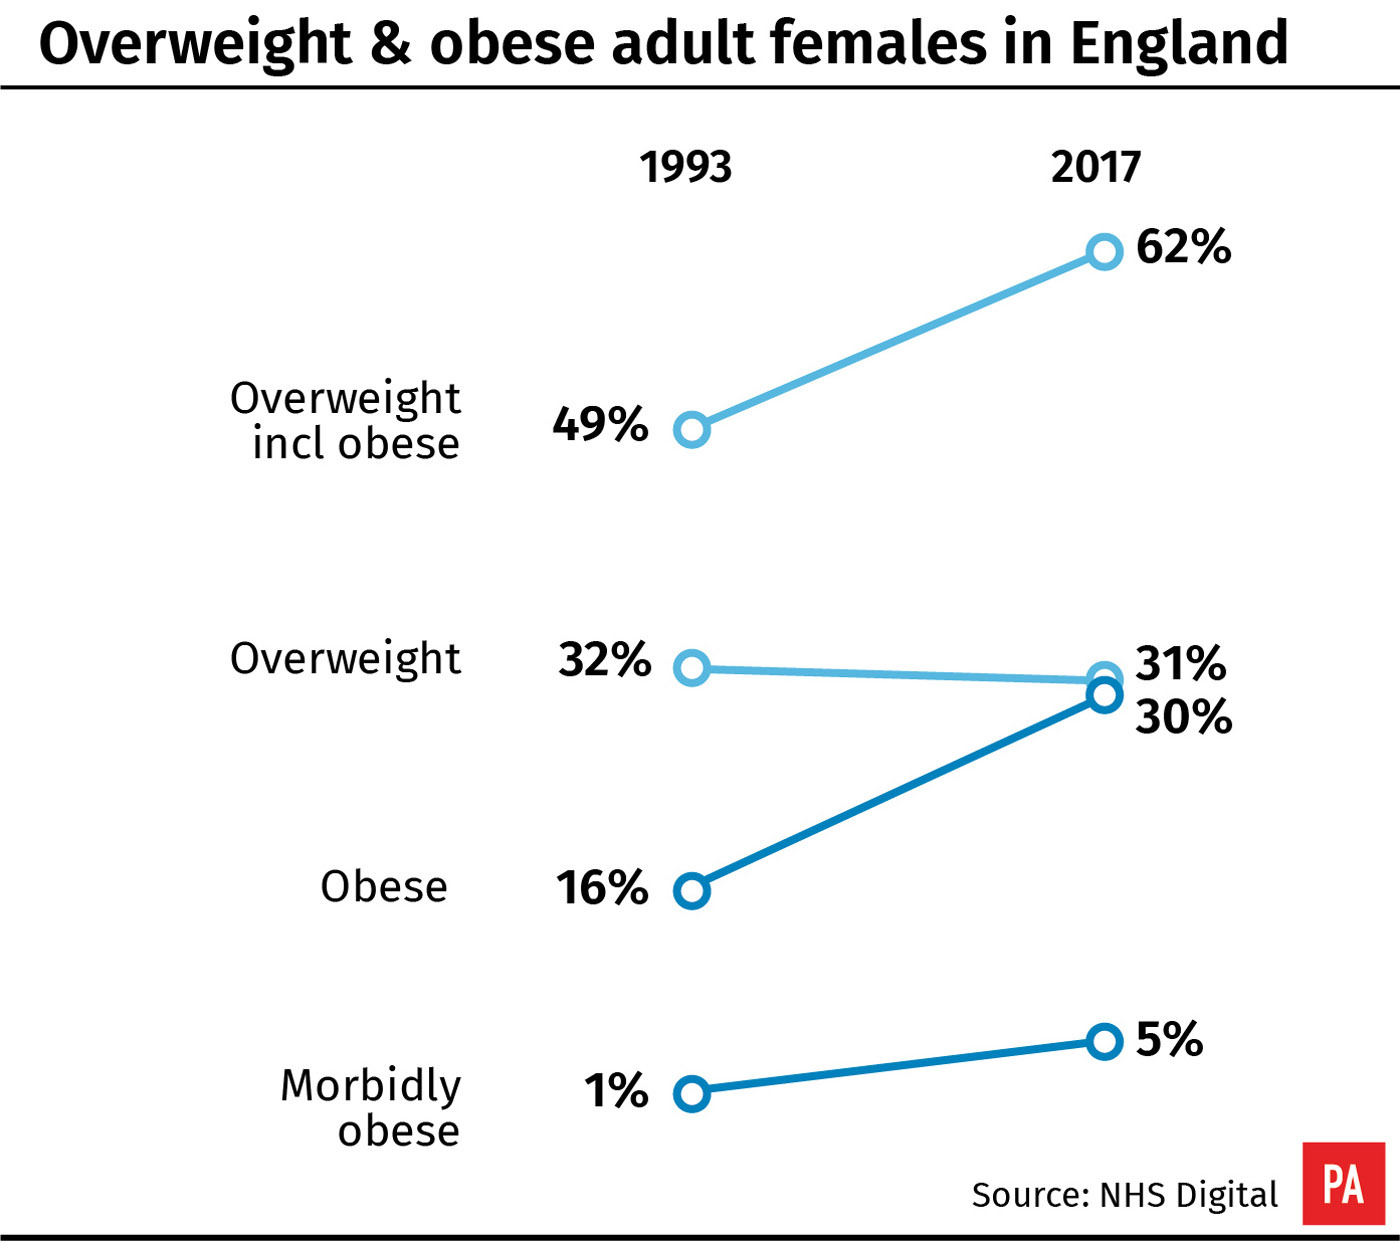 Overweight & obese adult females in England